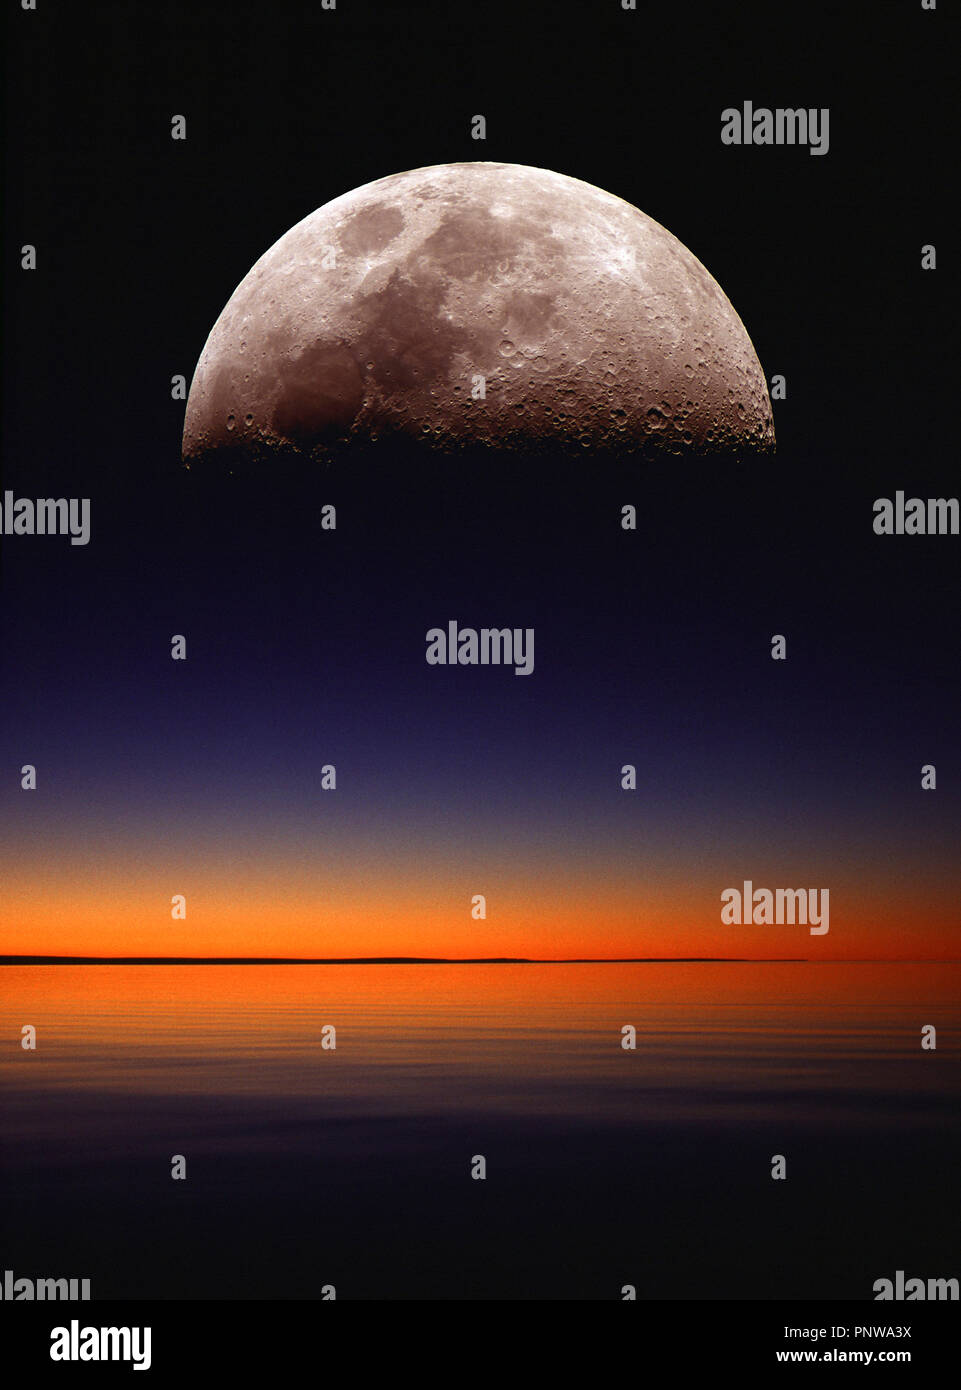 Concept art photograph of the moon rising above a seascape horizon at dawn. Stock Photo